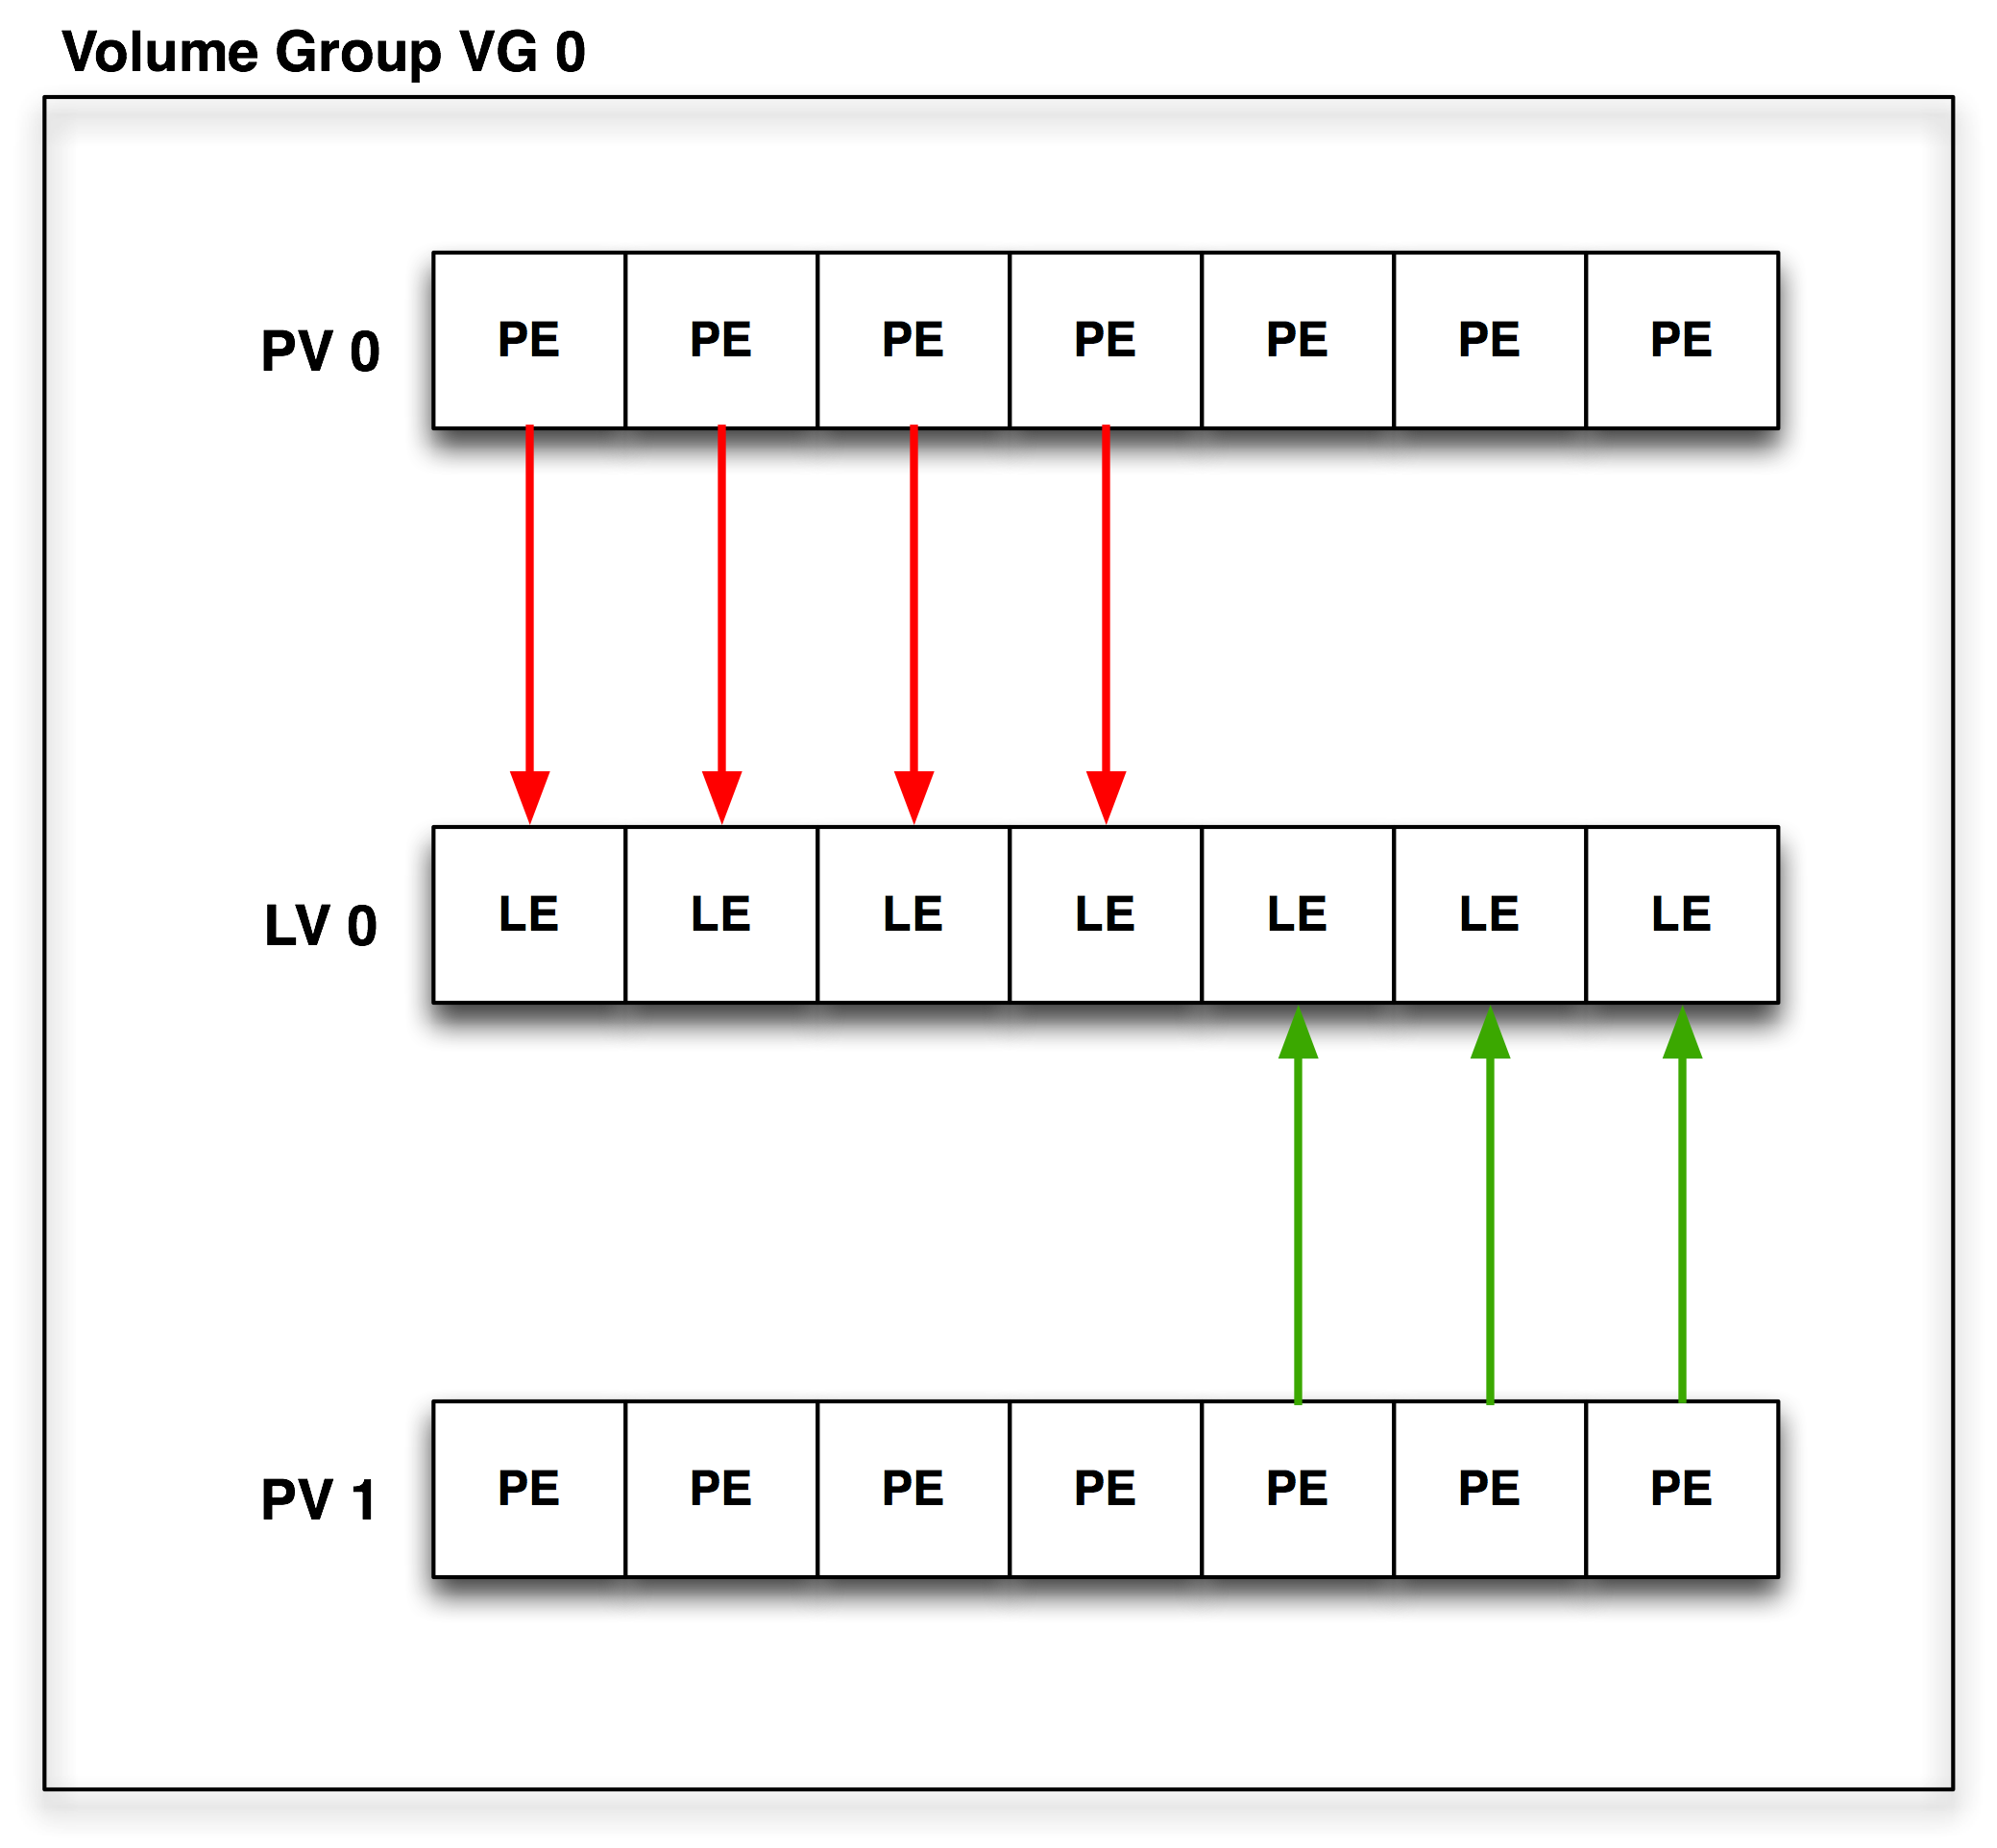 Anatomy of Logical Volume Management